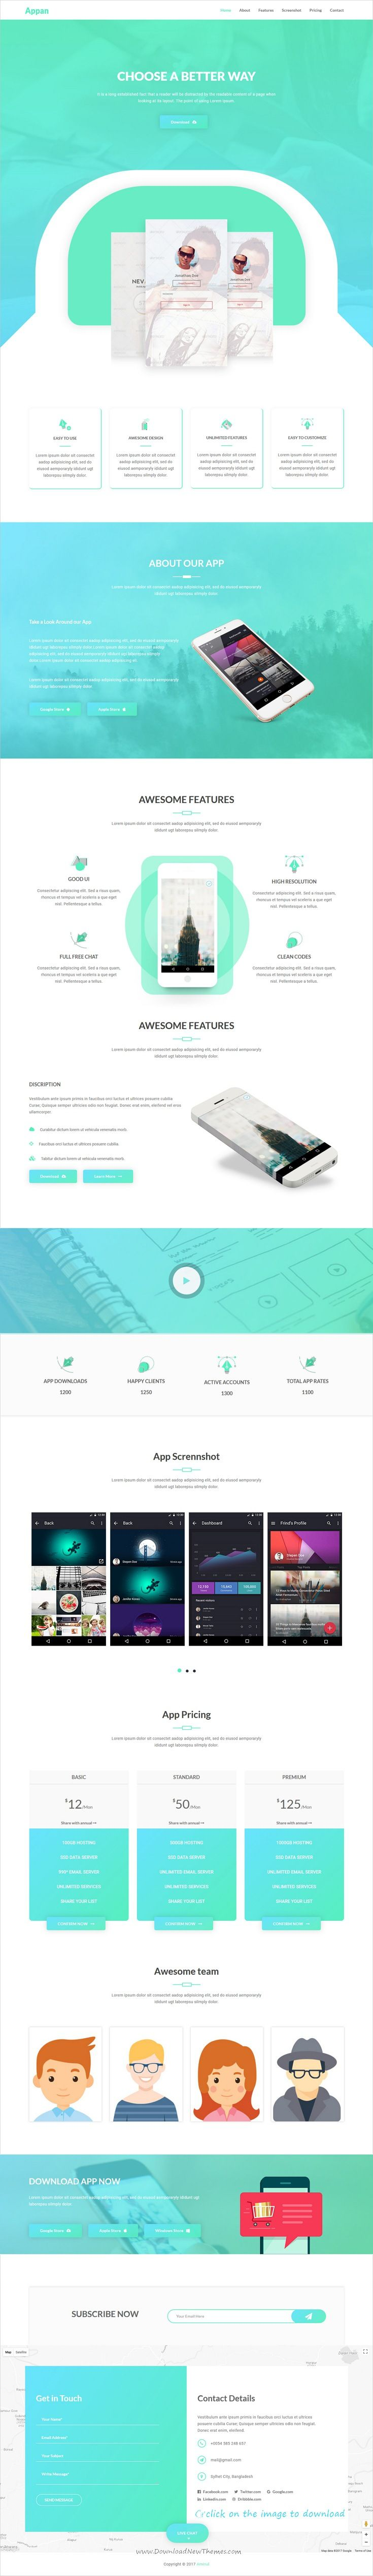 Appan is clean and modern design 4in1 responsive #HTML5 template for creative #app landing page website  to download 👉click on image.